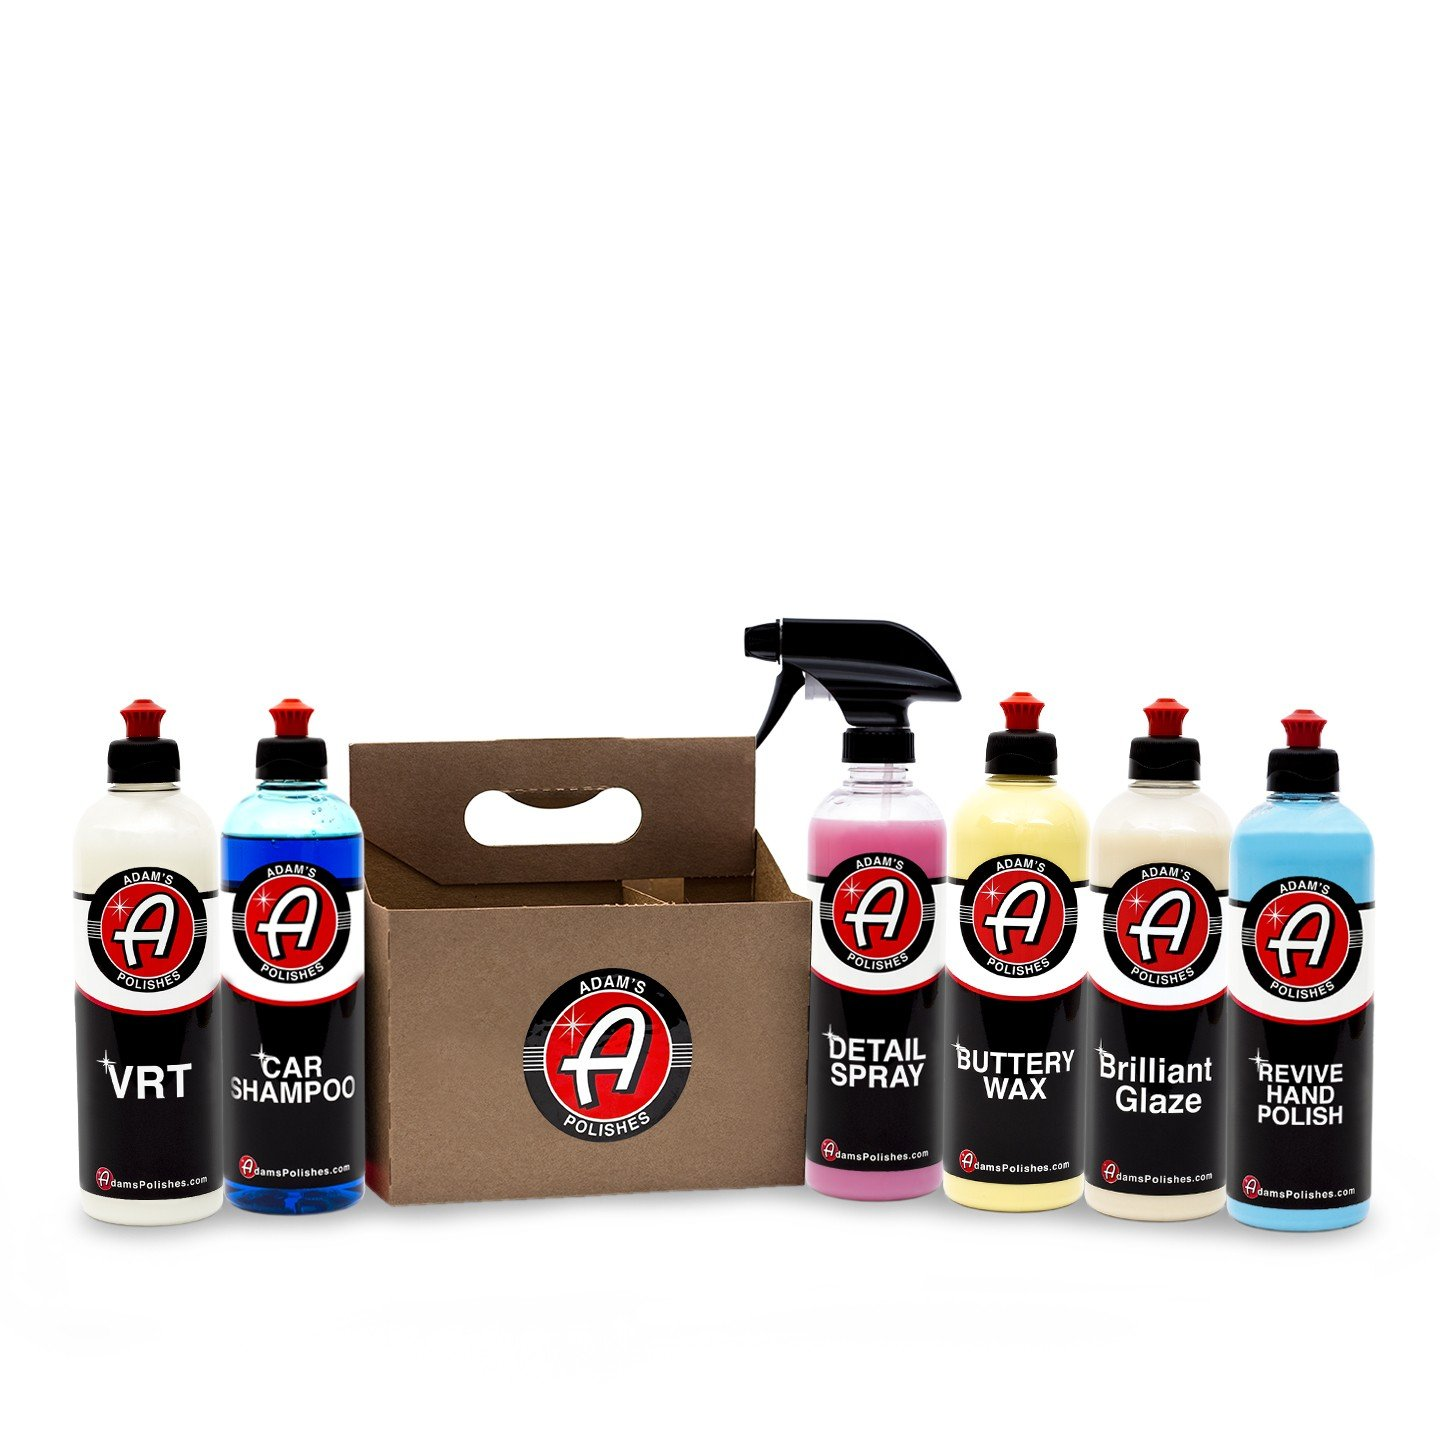 adams polishes  : Adam's Exterior 6 Pack - Includes Six Iconic Products to ...